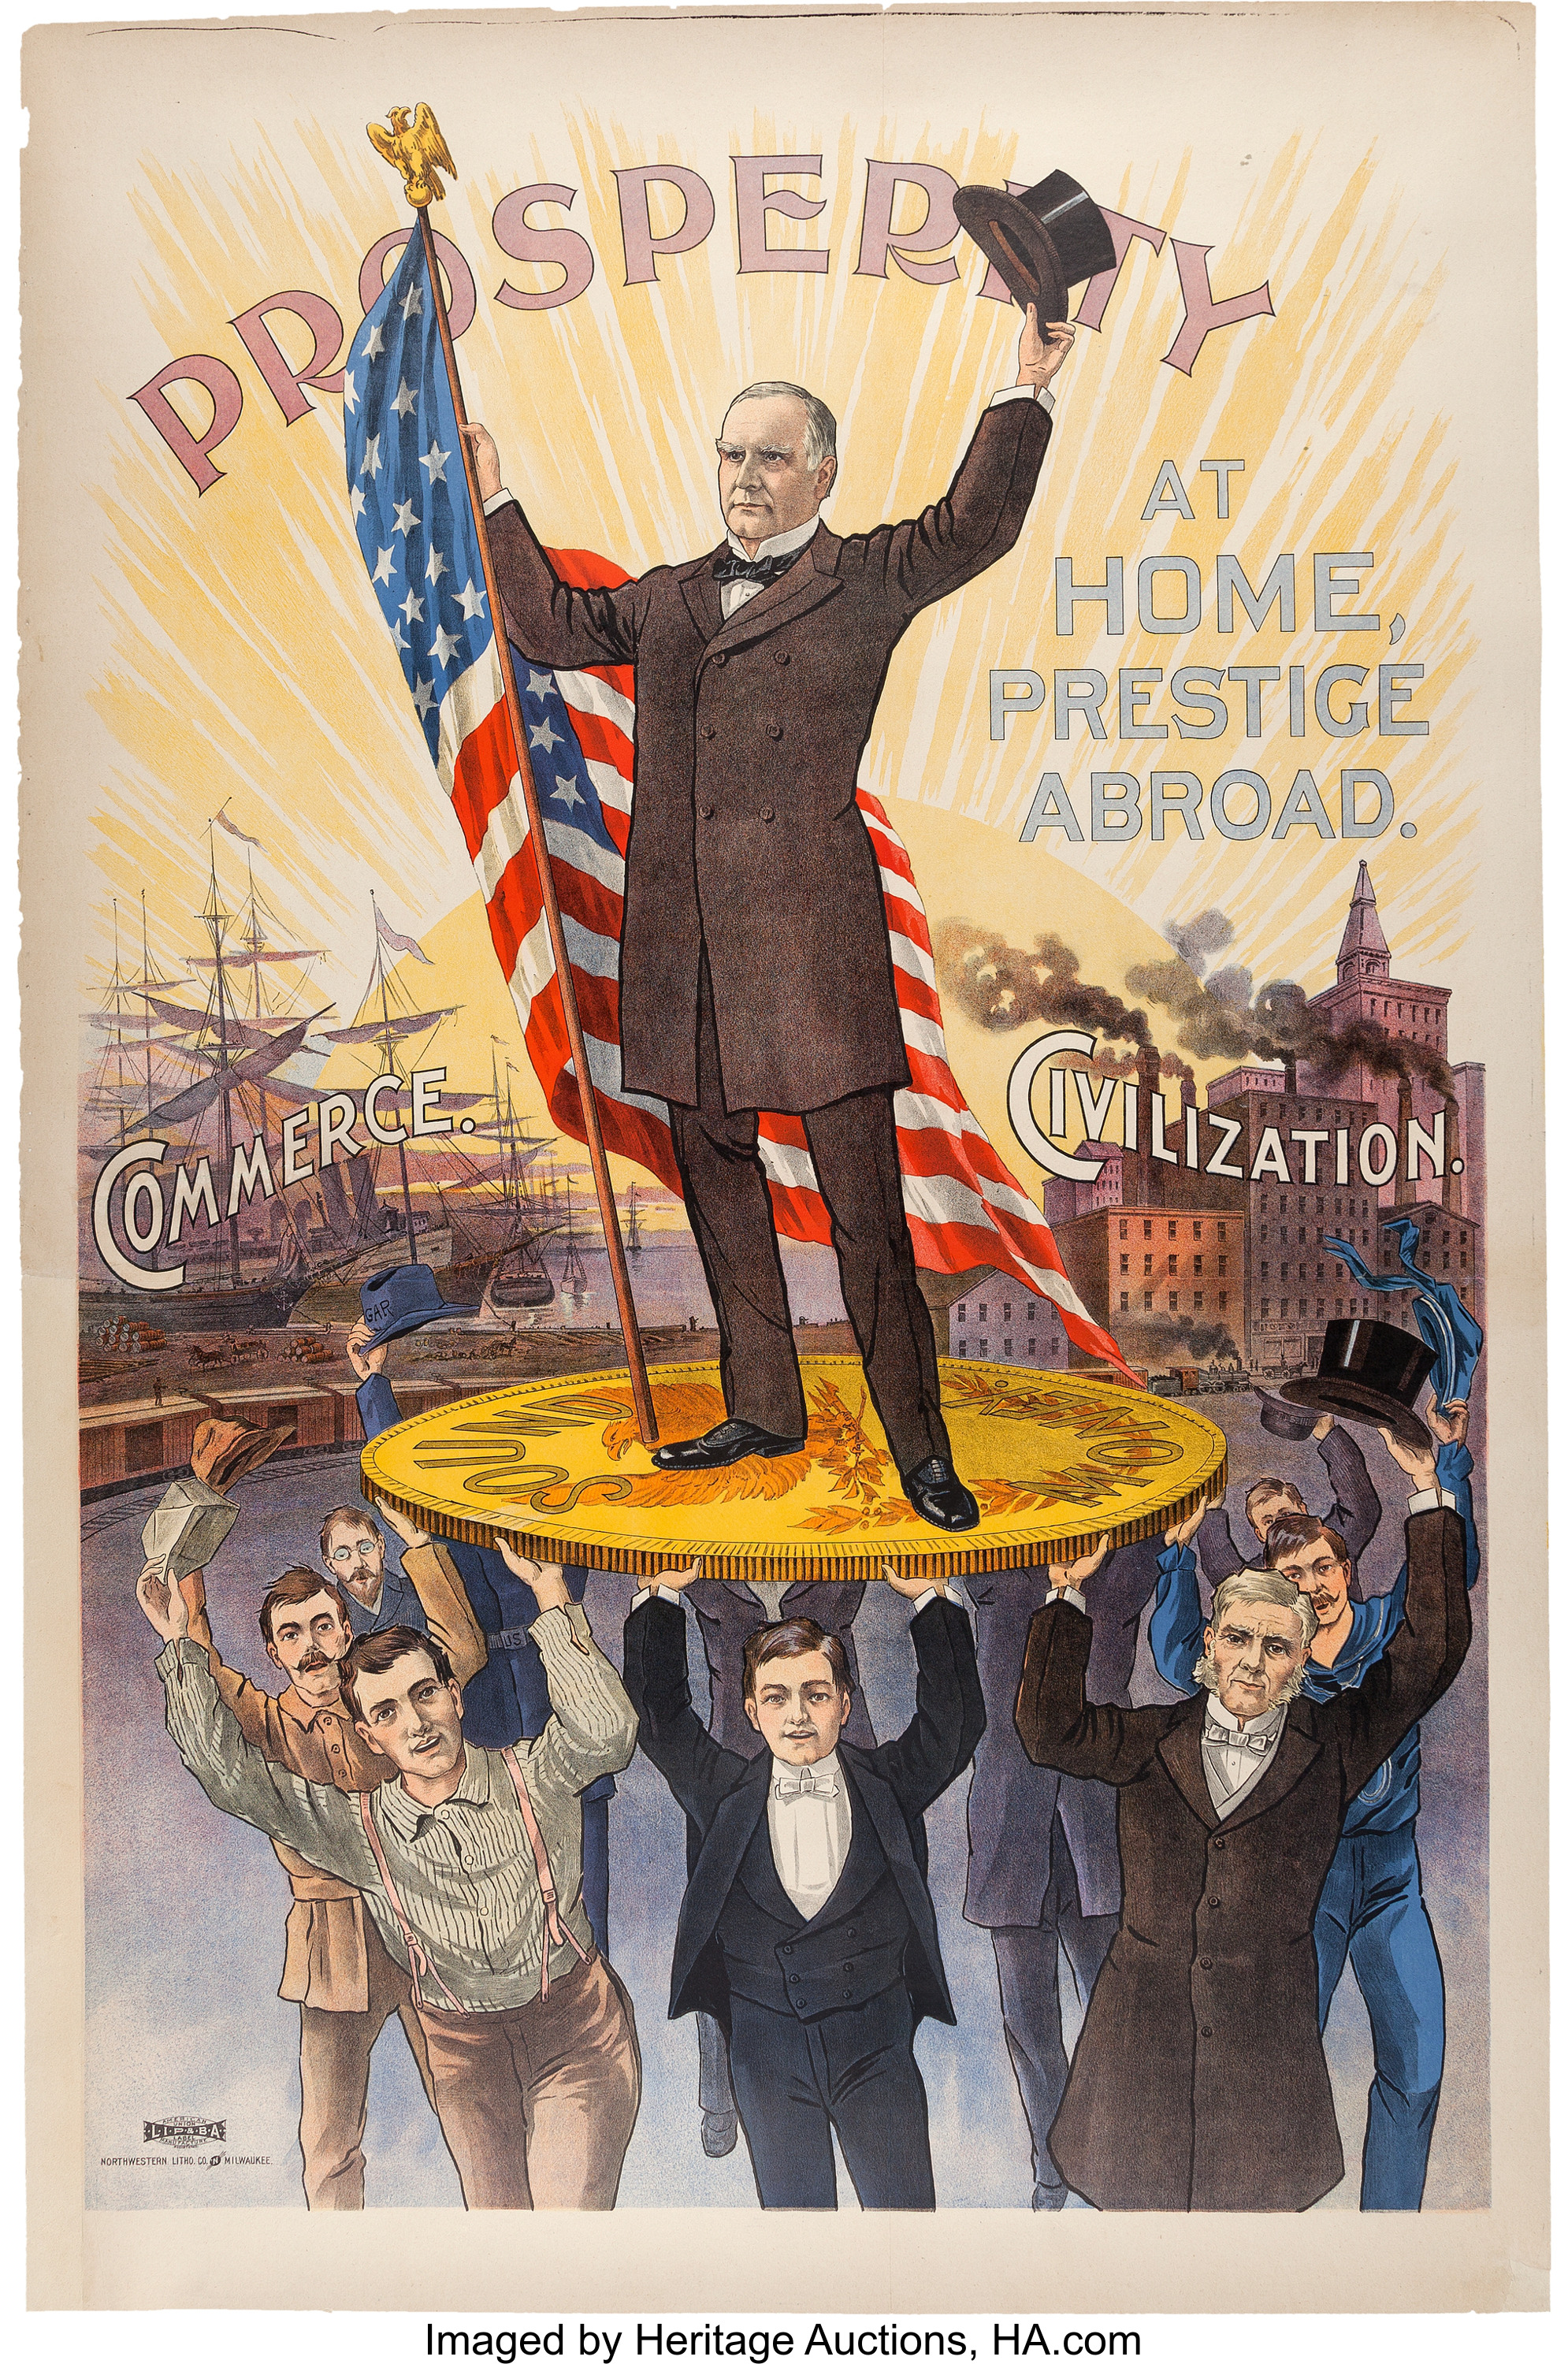 A circa 1900 28-inch-by-42-inch near-mint condition campaign poster for President William McKinley, who was running for a second term.